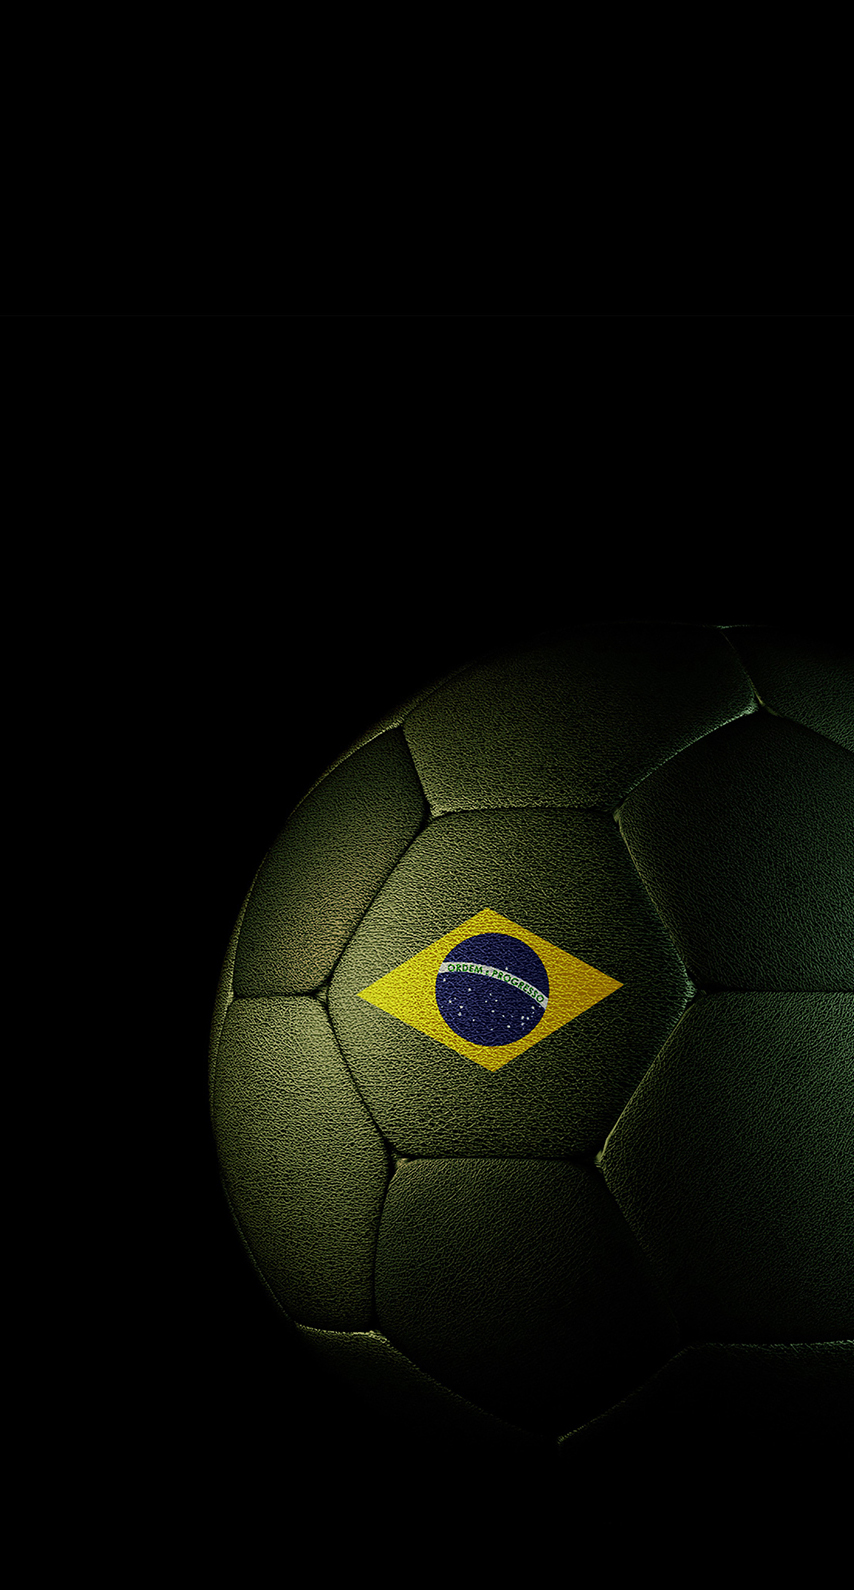 soccer ball, match